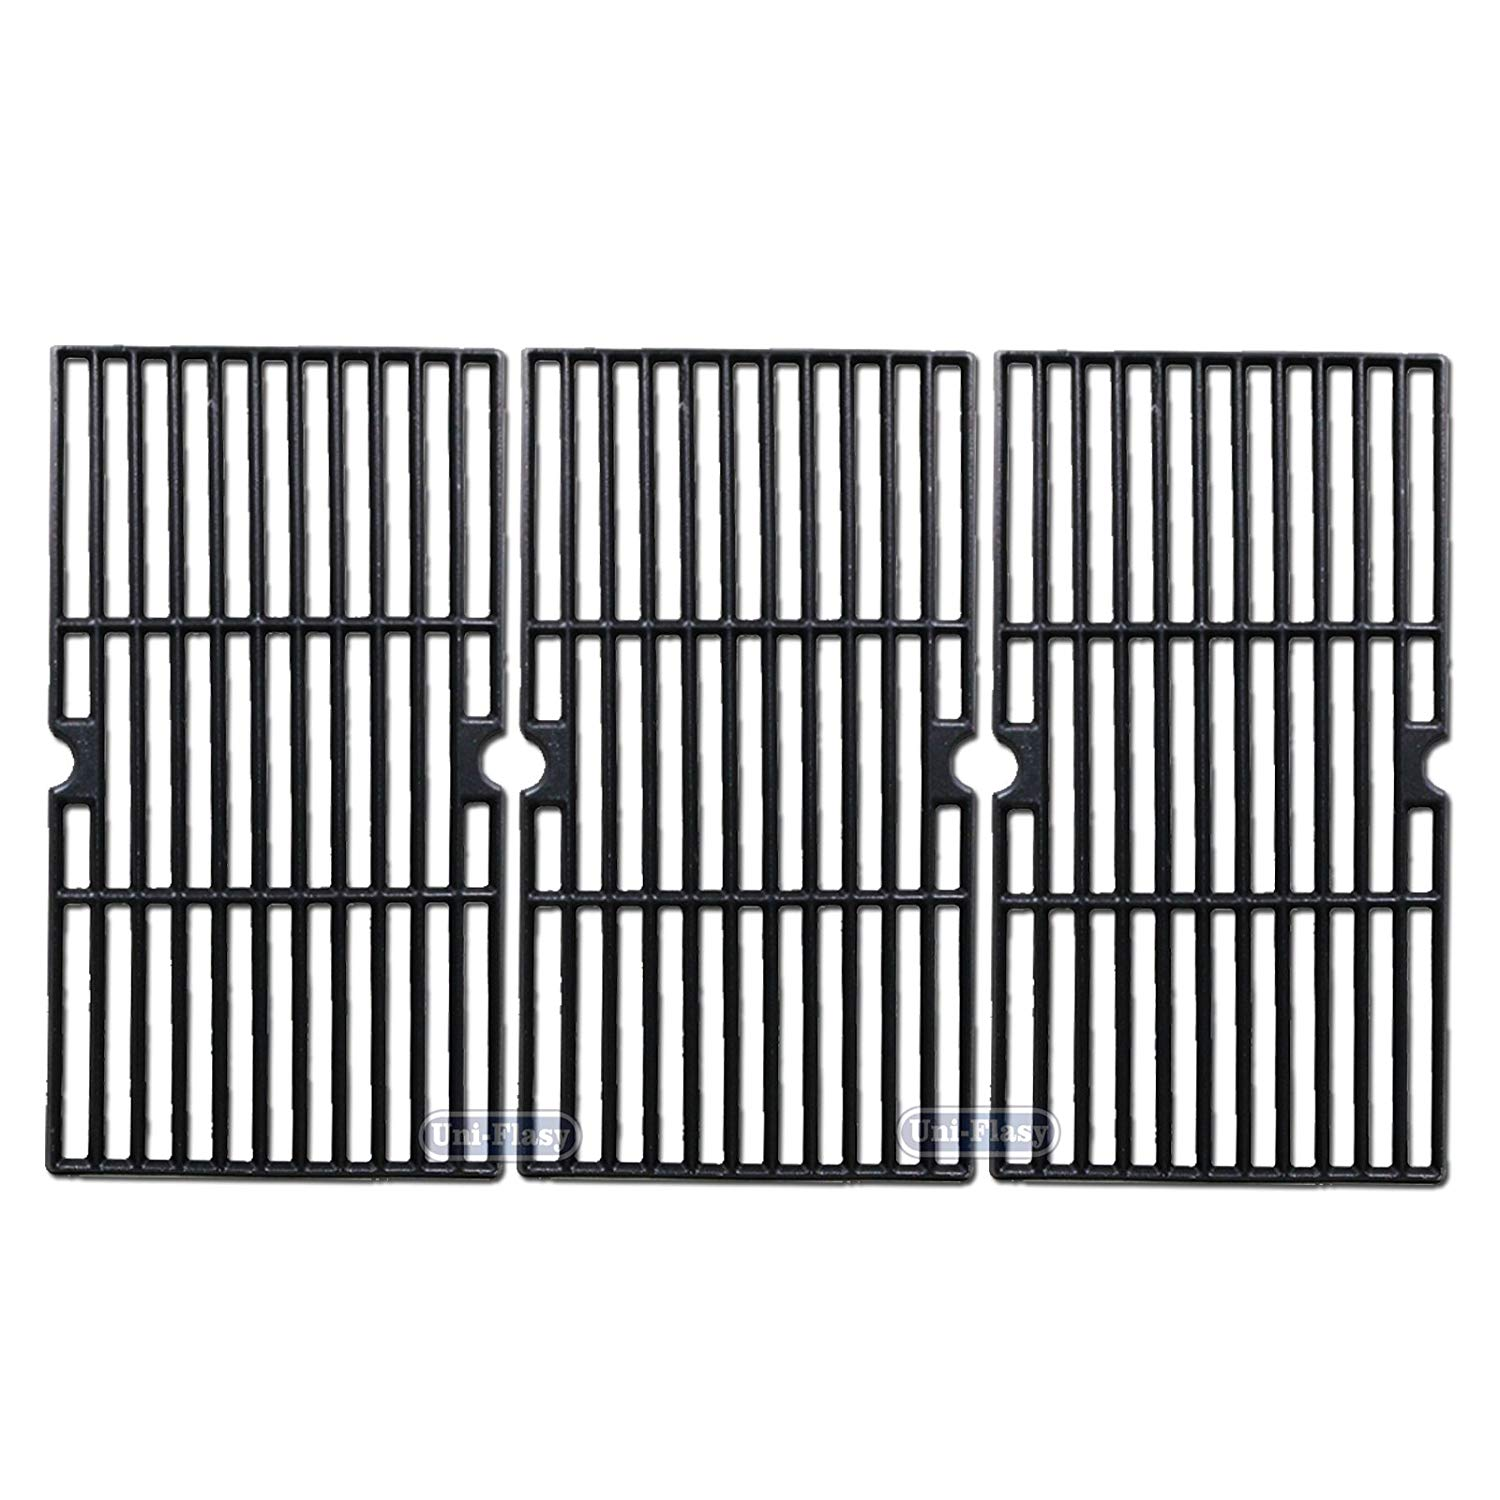 Cast Iron Grill Cooking Grid Grate Replacement Parts for ...